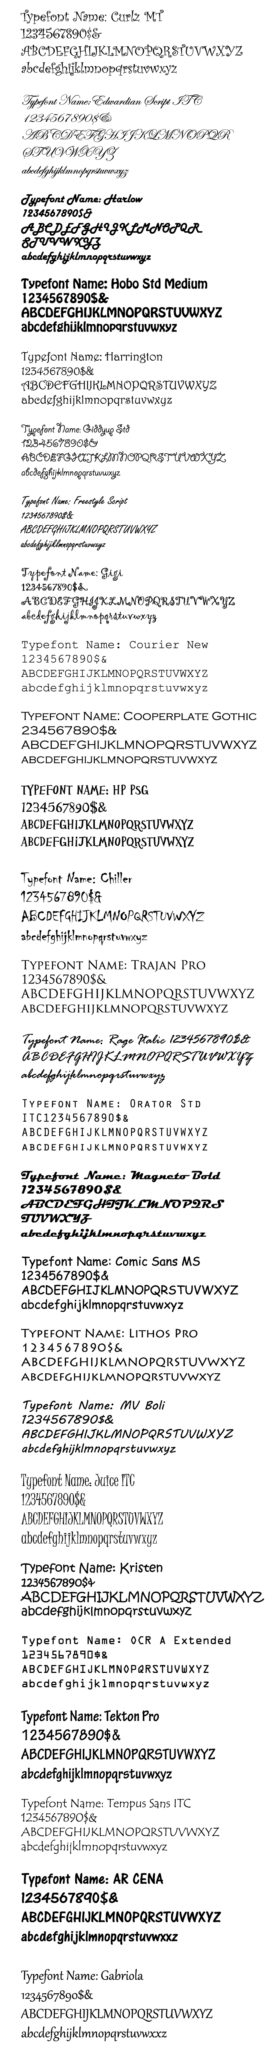 Formal, Casual & Specialty Typestyles